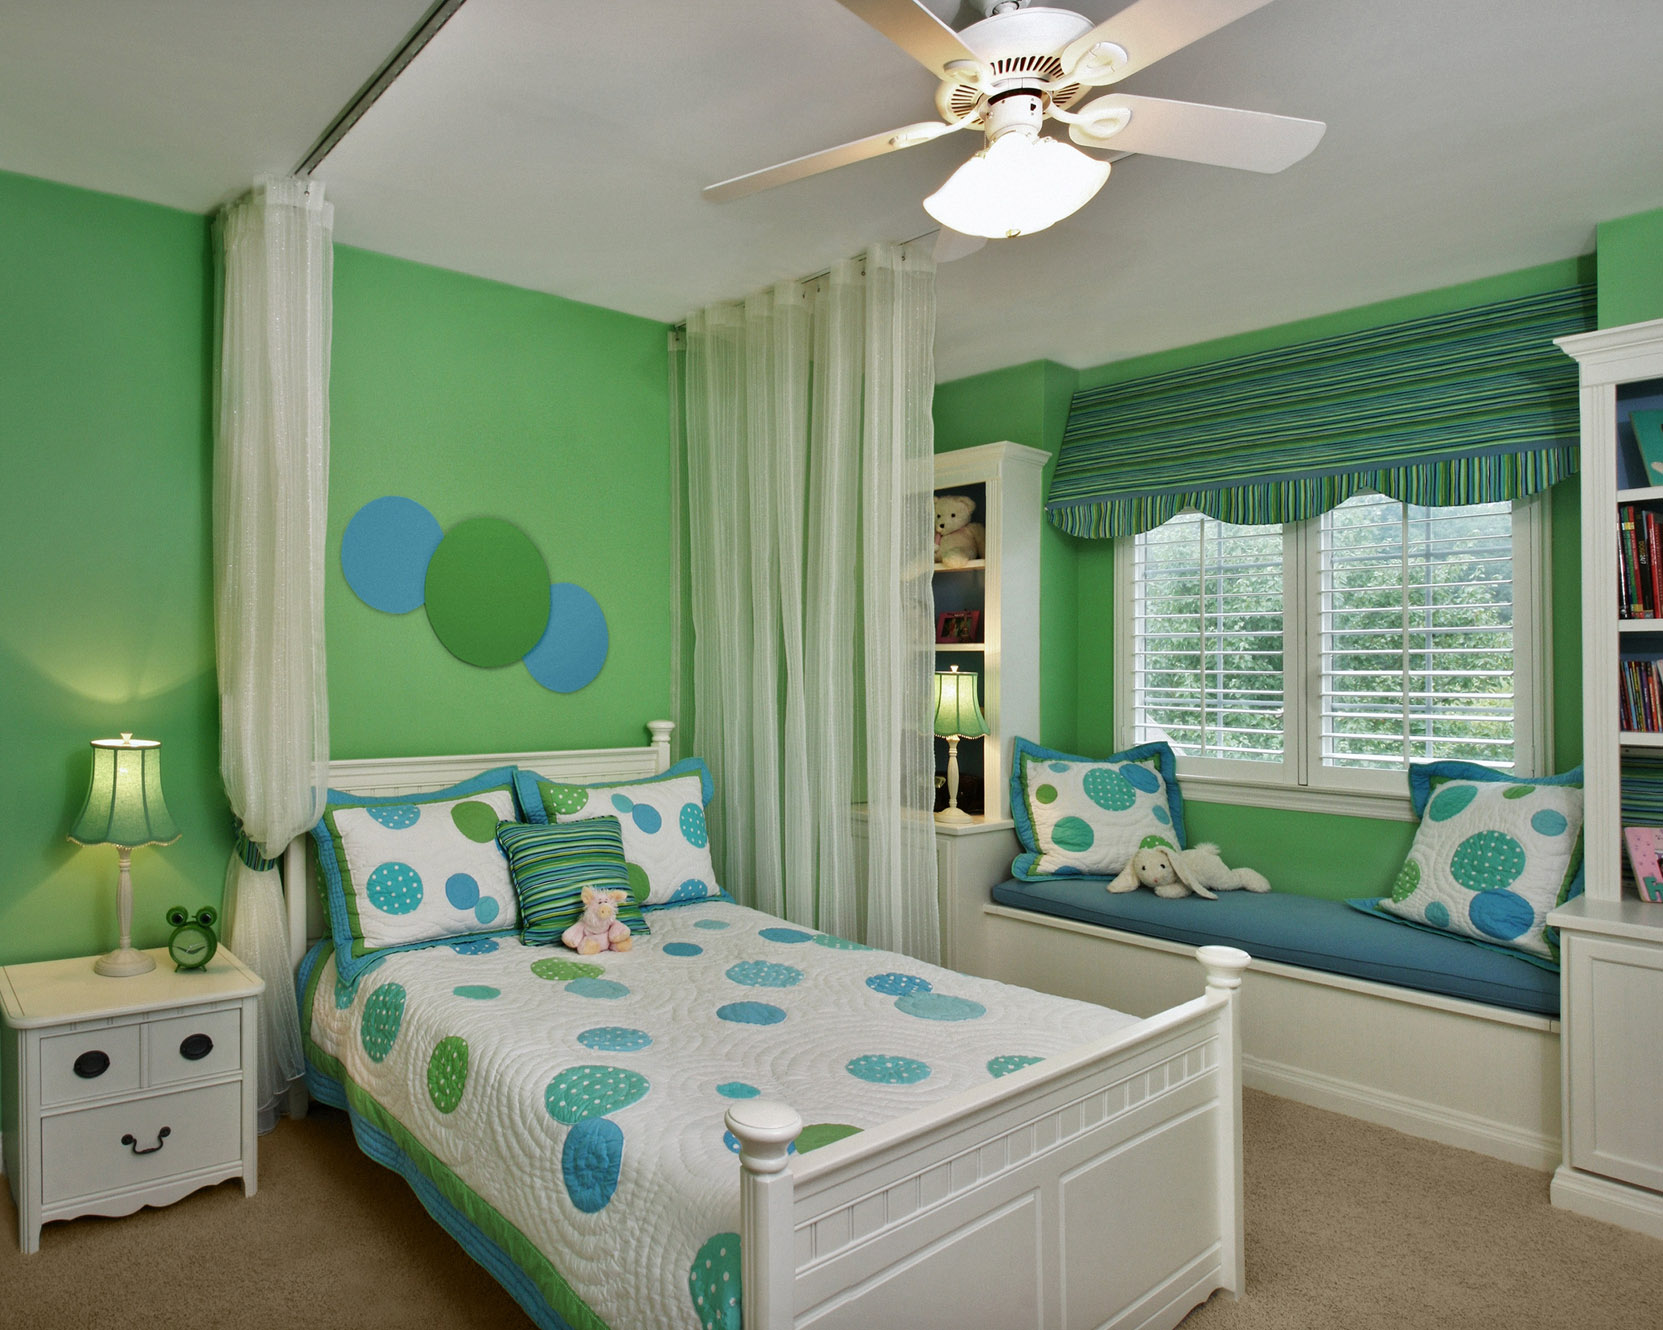 The abc 39 s of decorating k is for kid 39 s rooms decorating den interiors - Child bedroom decor ...